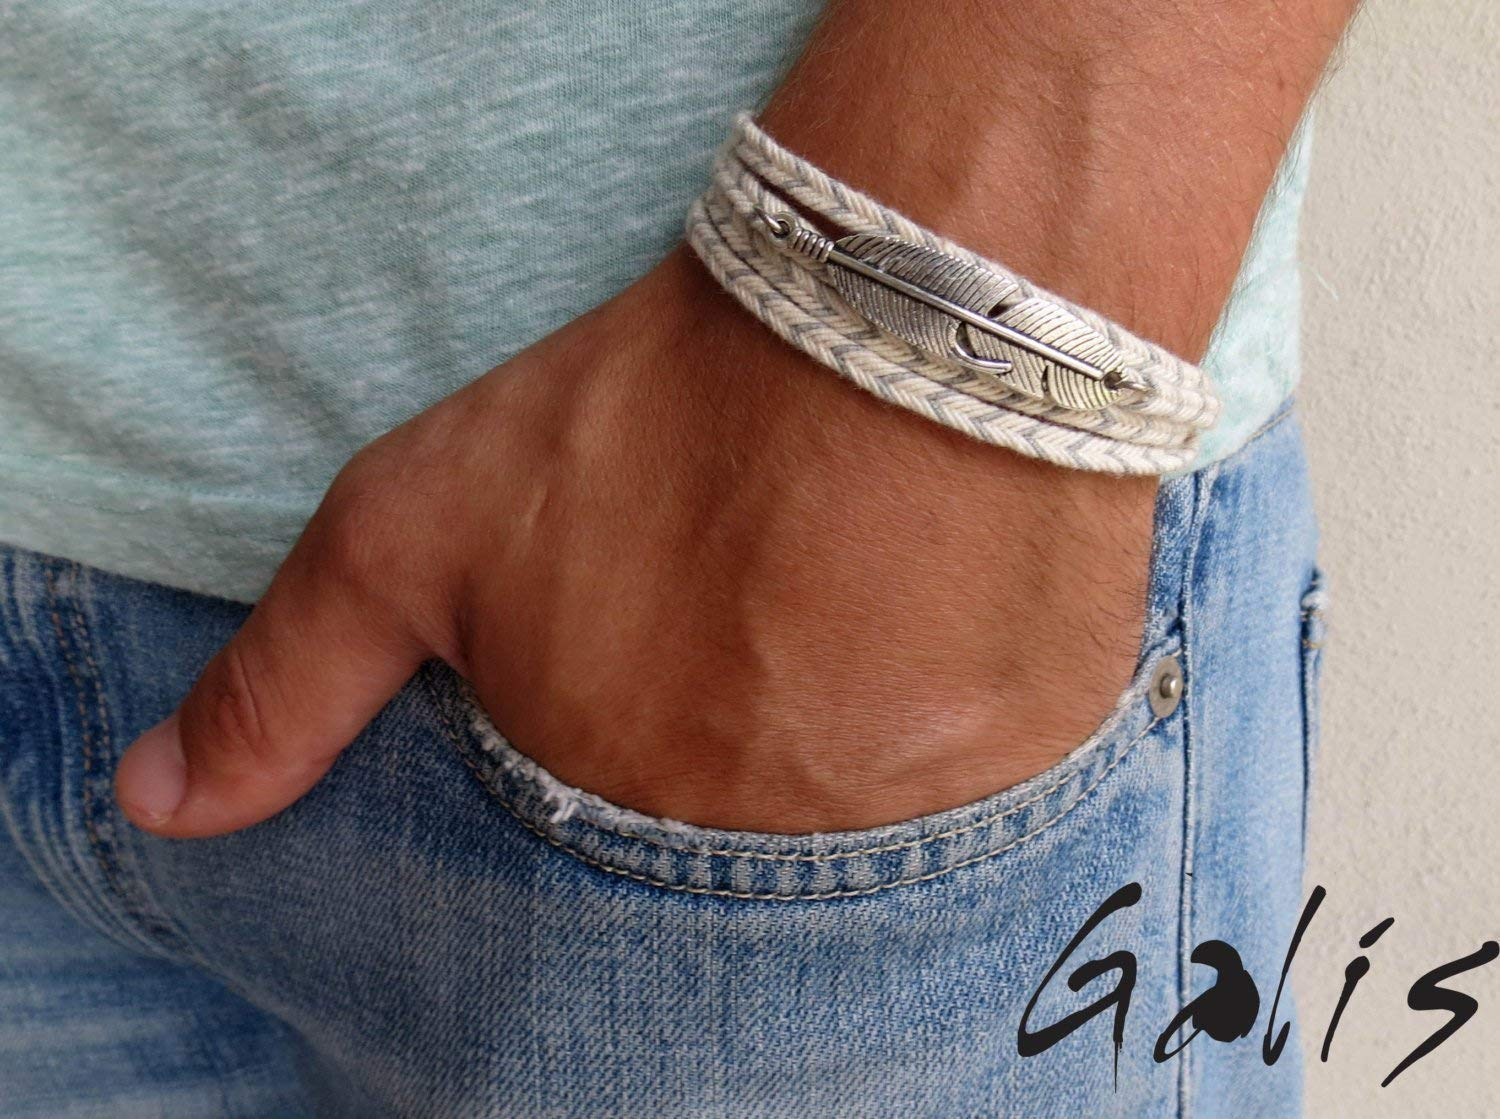 Handmade Wrap Gray and White Fabric Feather Bracelet For Men By Galis Jewelry - Wrap Bracelet For Men - Gray Beacelet For Men